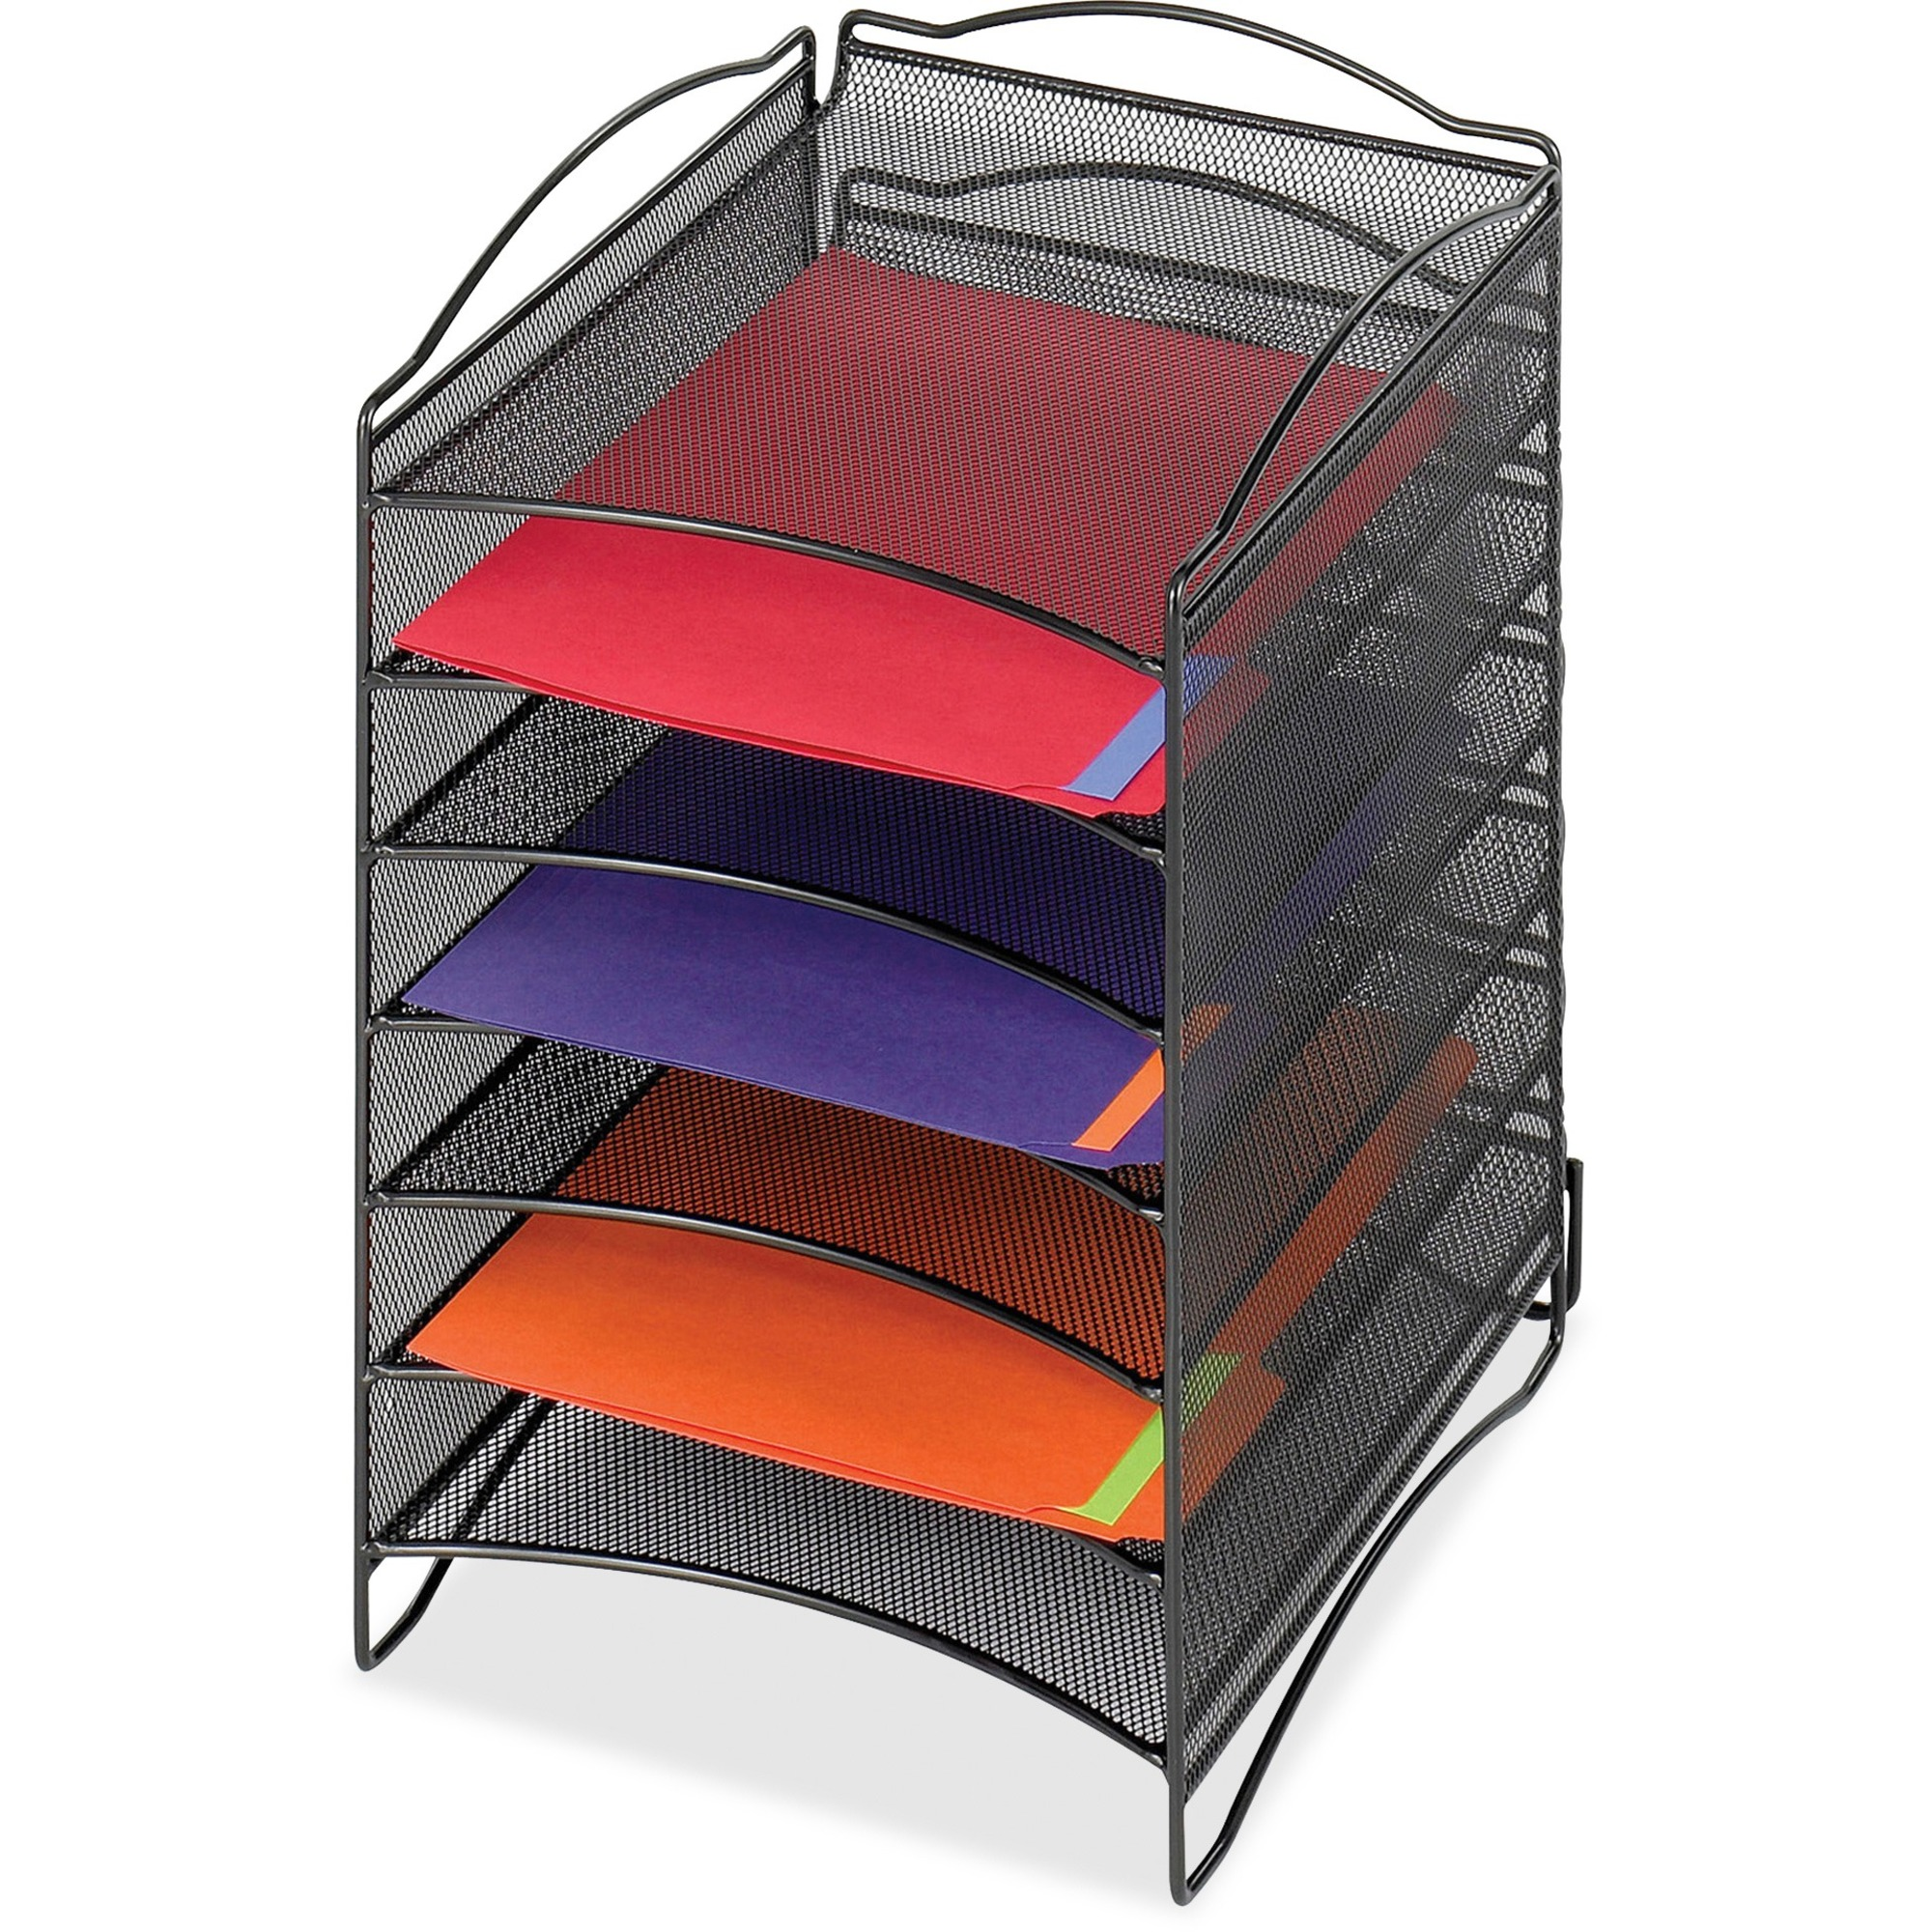 Safco 6 Compartment Mesh Desktop Organizer S Size 1 75 44 45 Mm X 9 50 241 30 12 25 311 15 3 Height